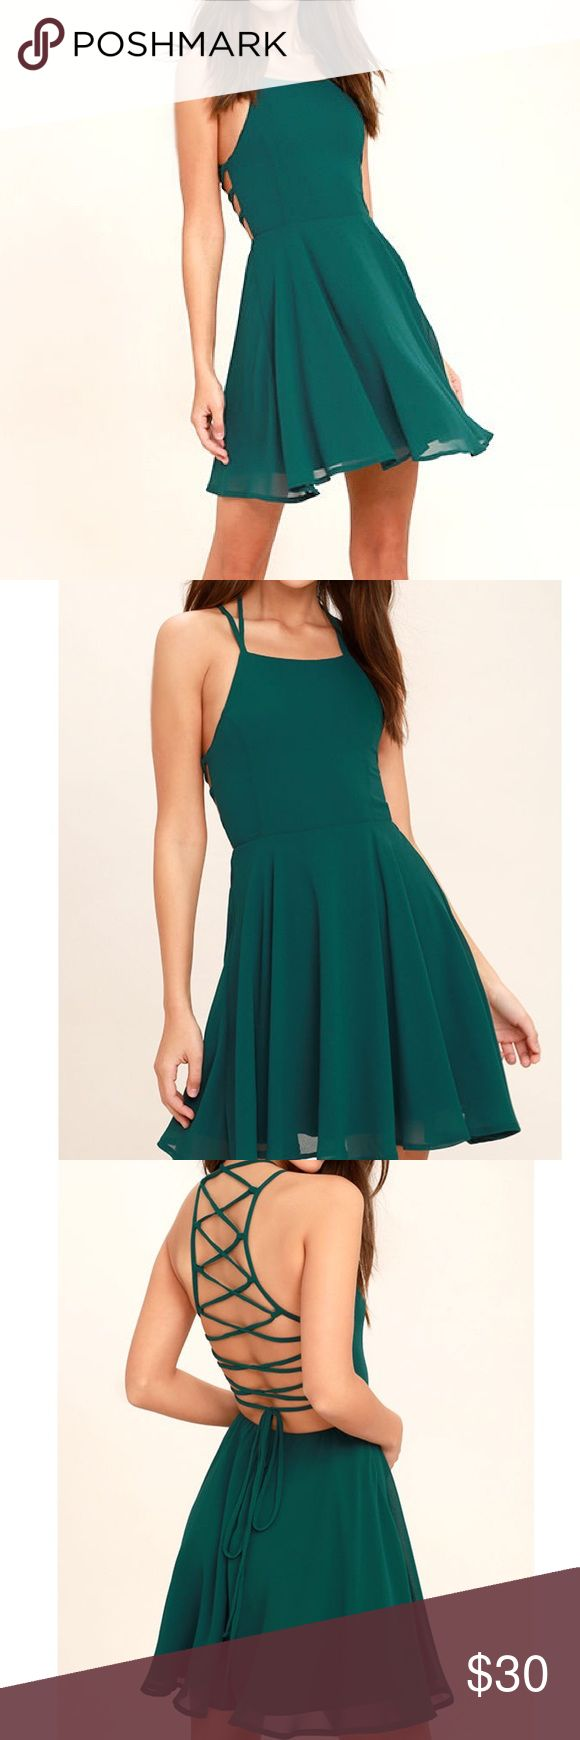 Lulus Forest Green Dress new without tags - retail was $50 Lulu's Dresses